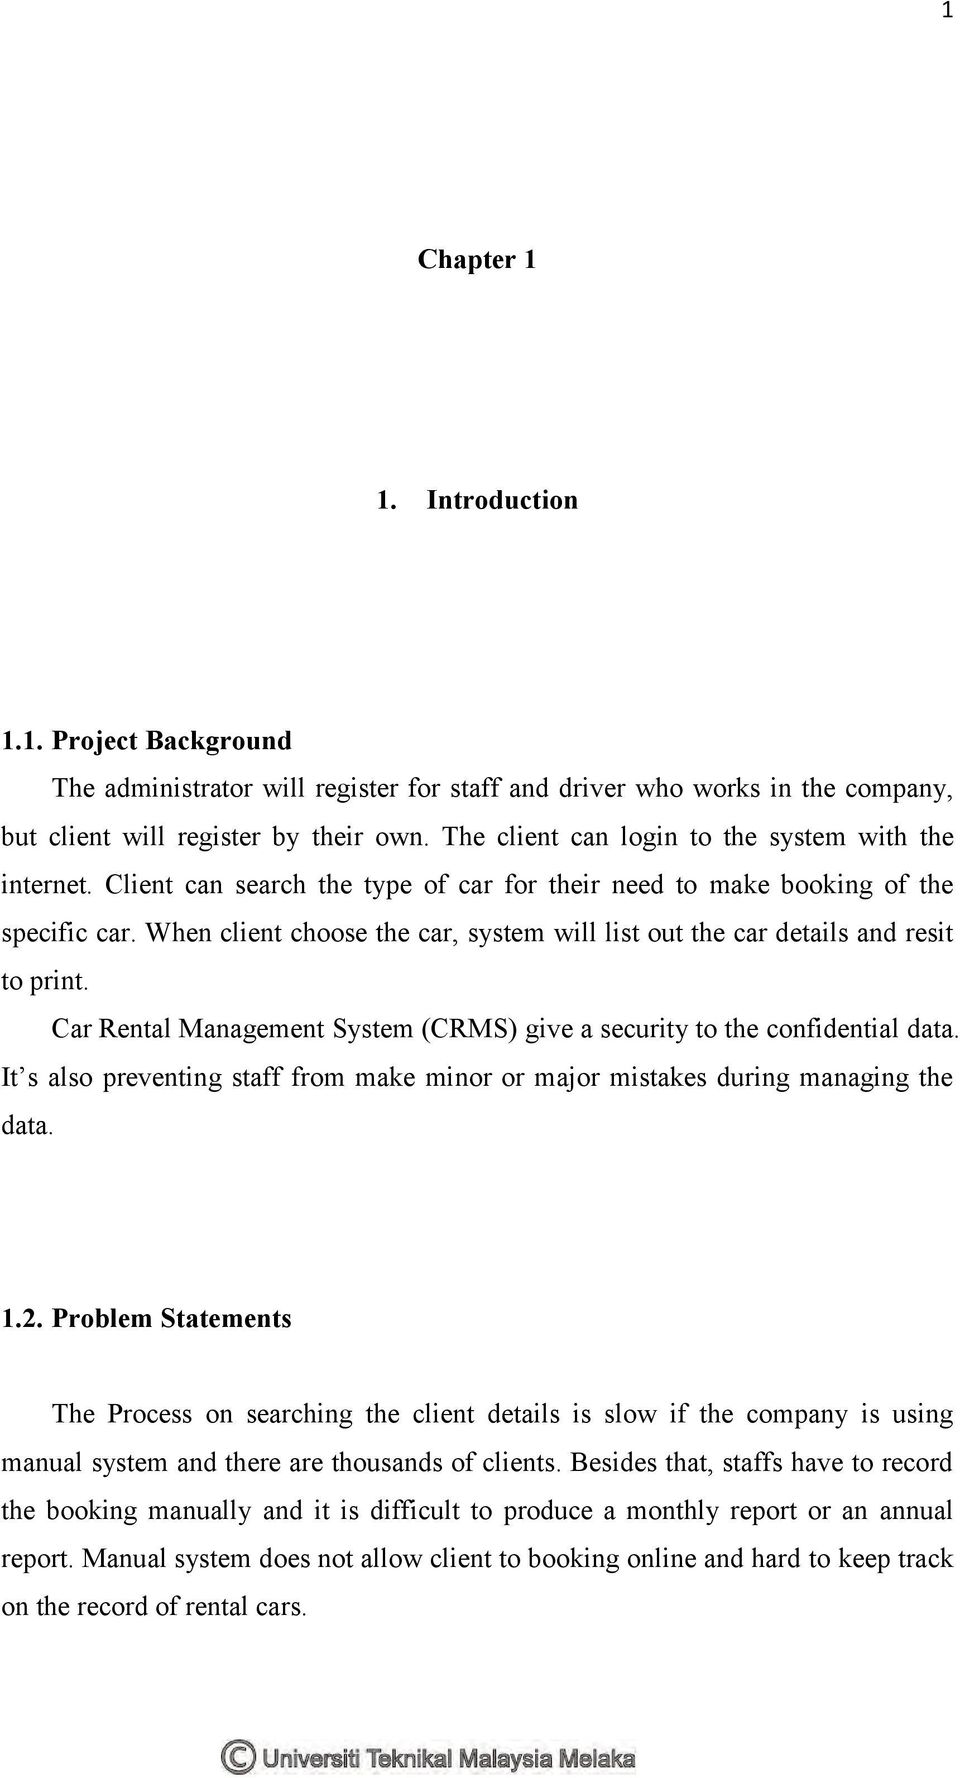 literature review on car rental system project